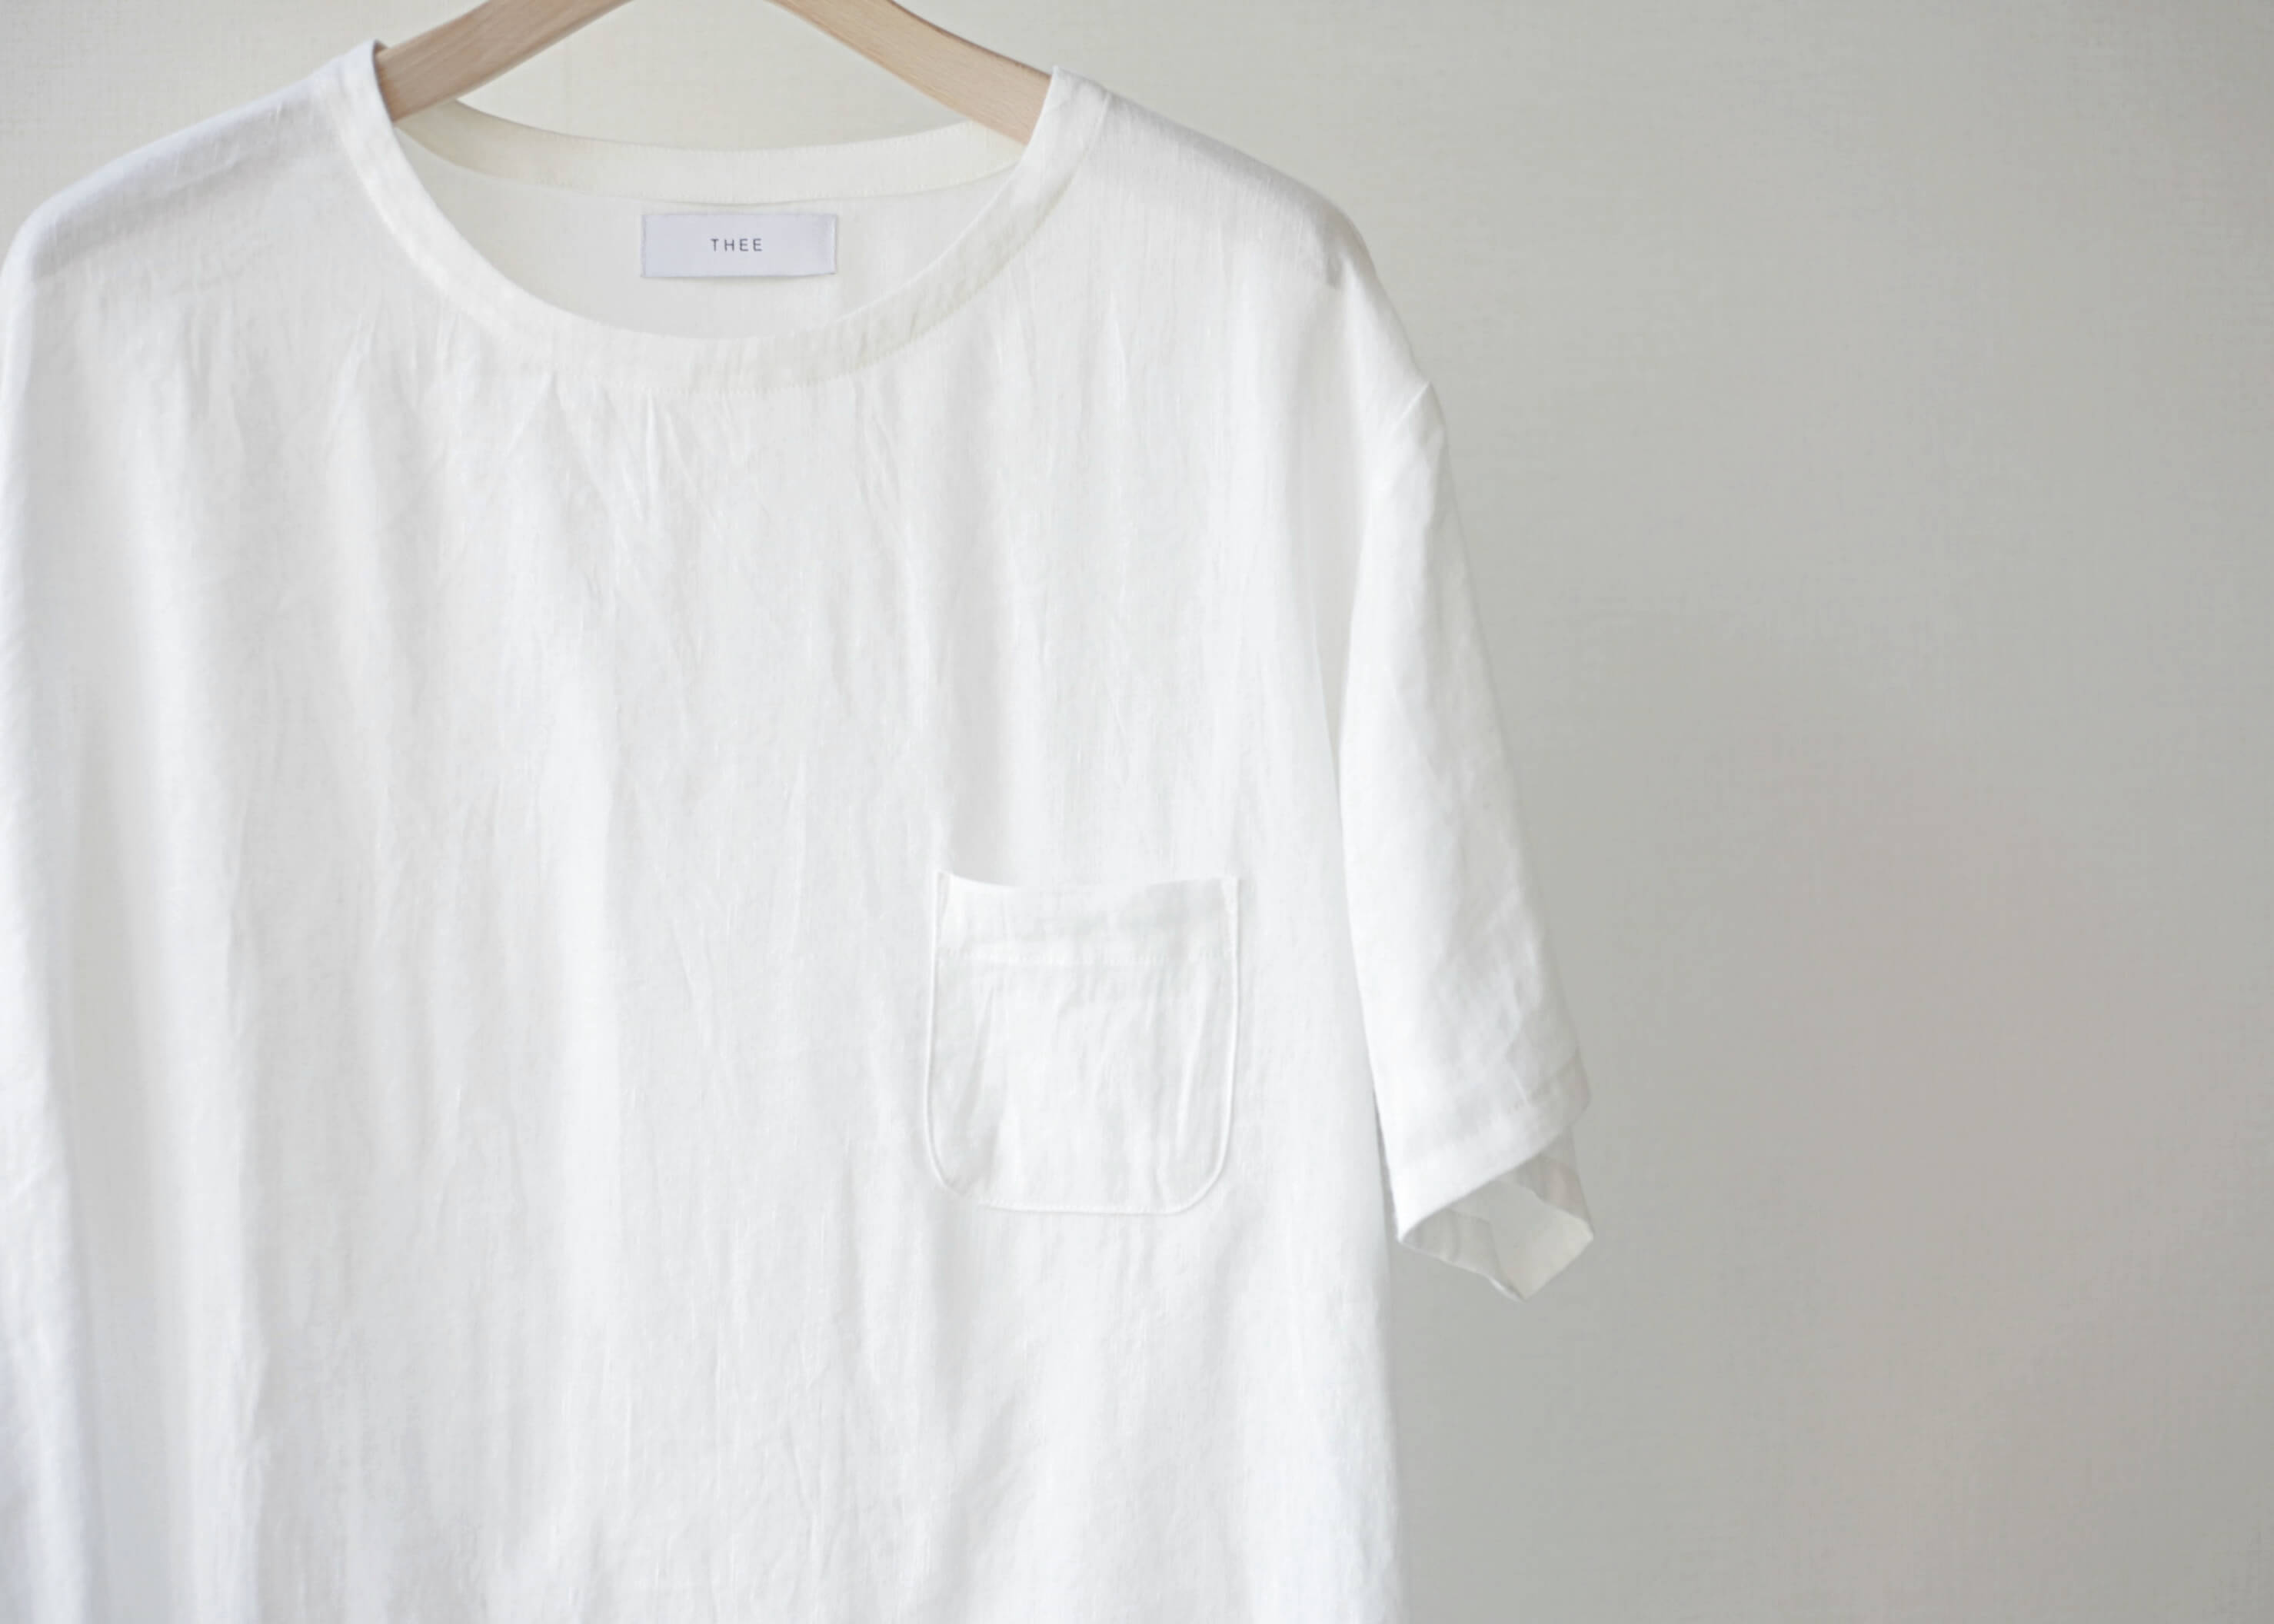 thee linen tee white 正面のアップ